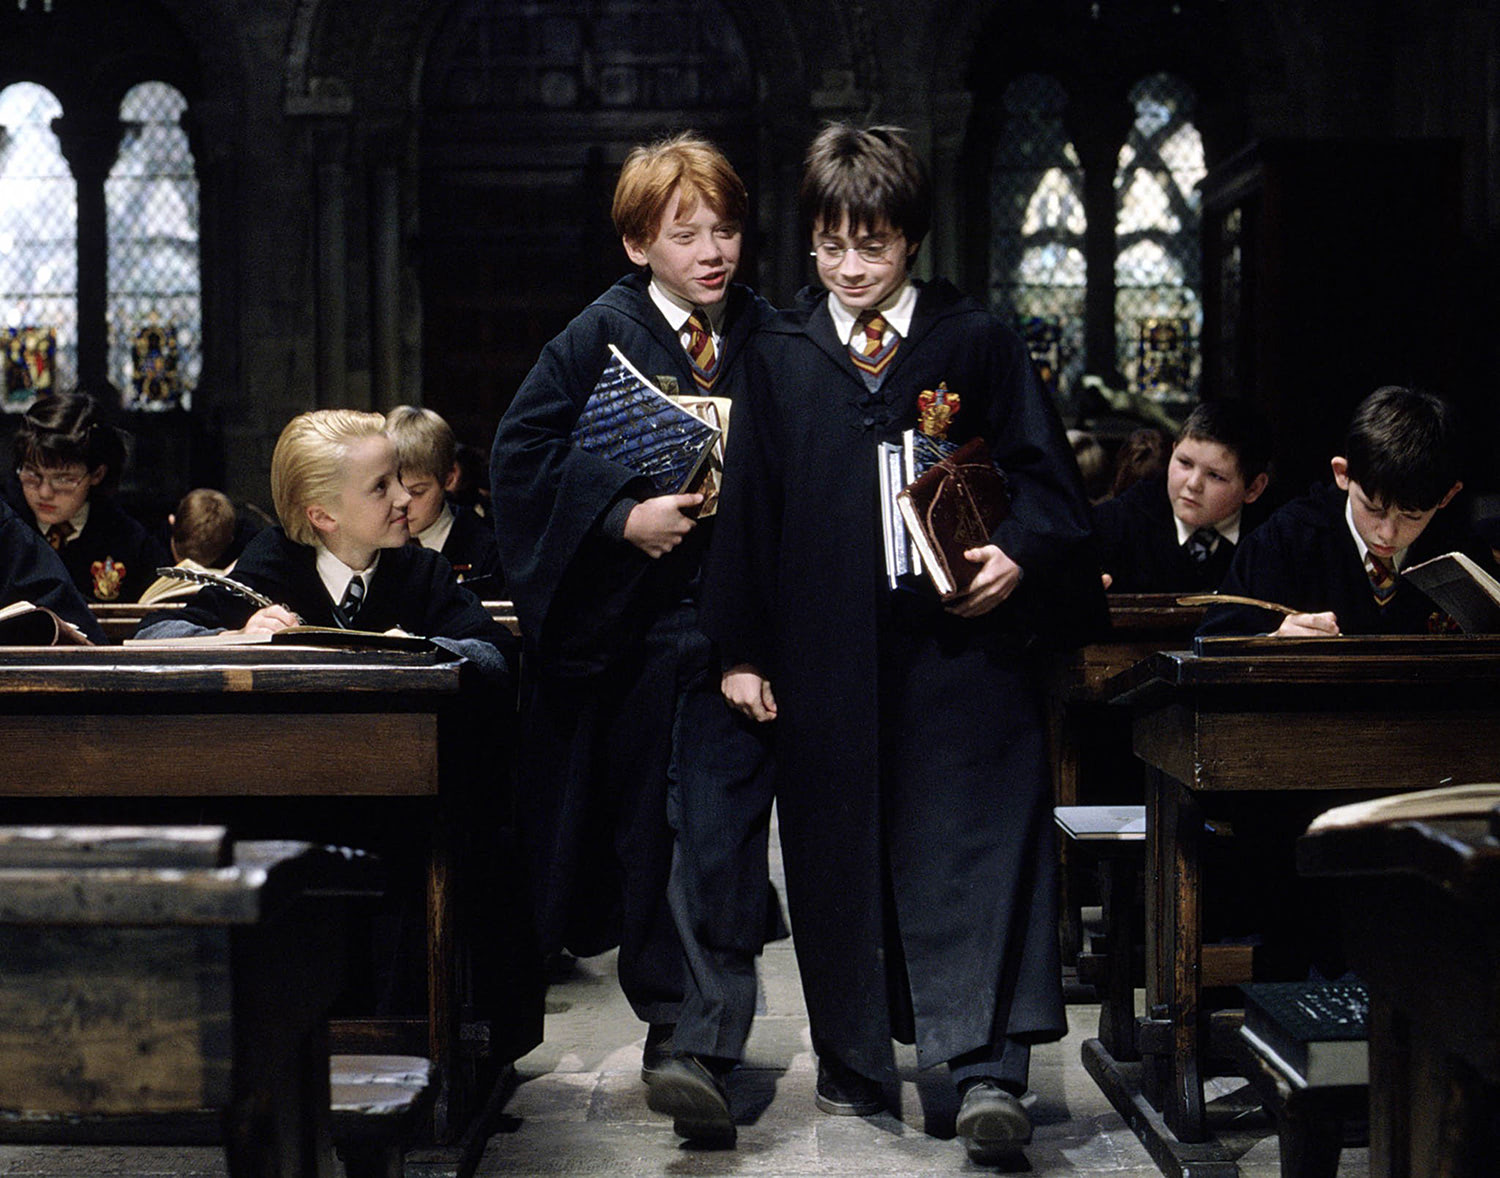 Ron and Harry in class